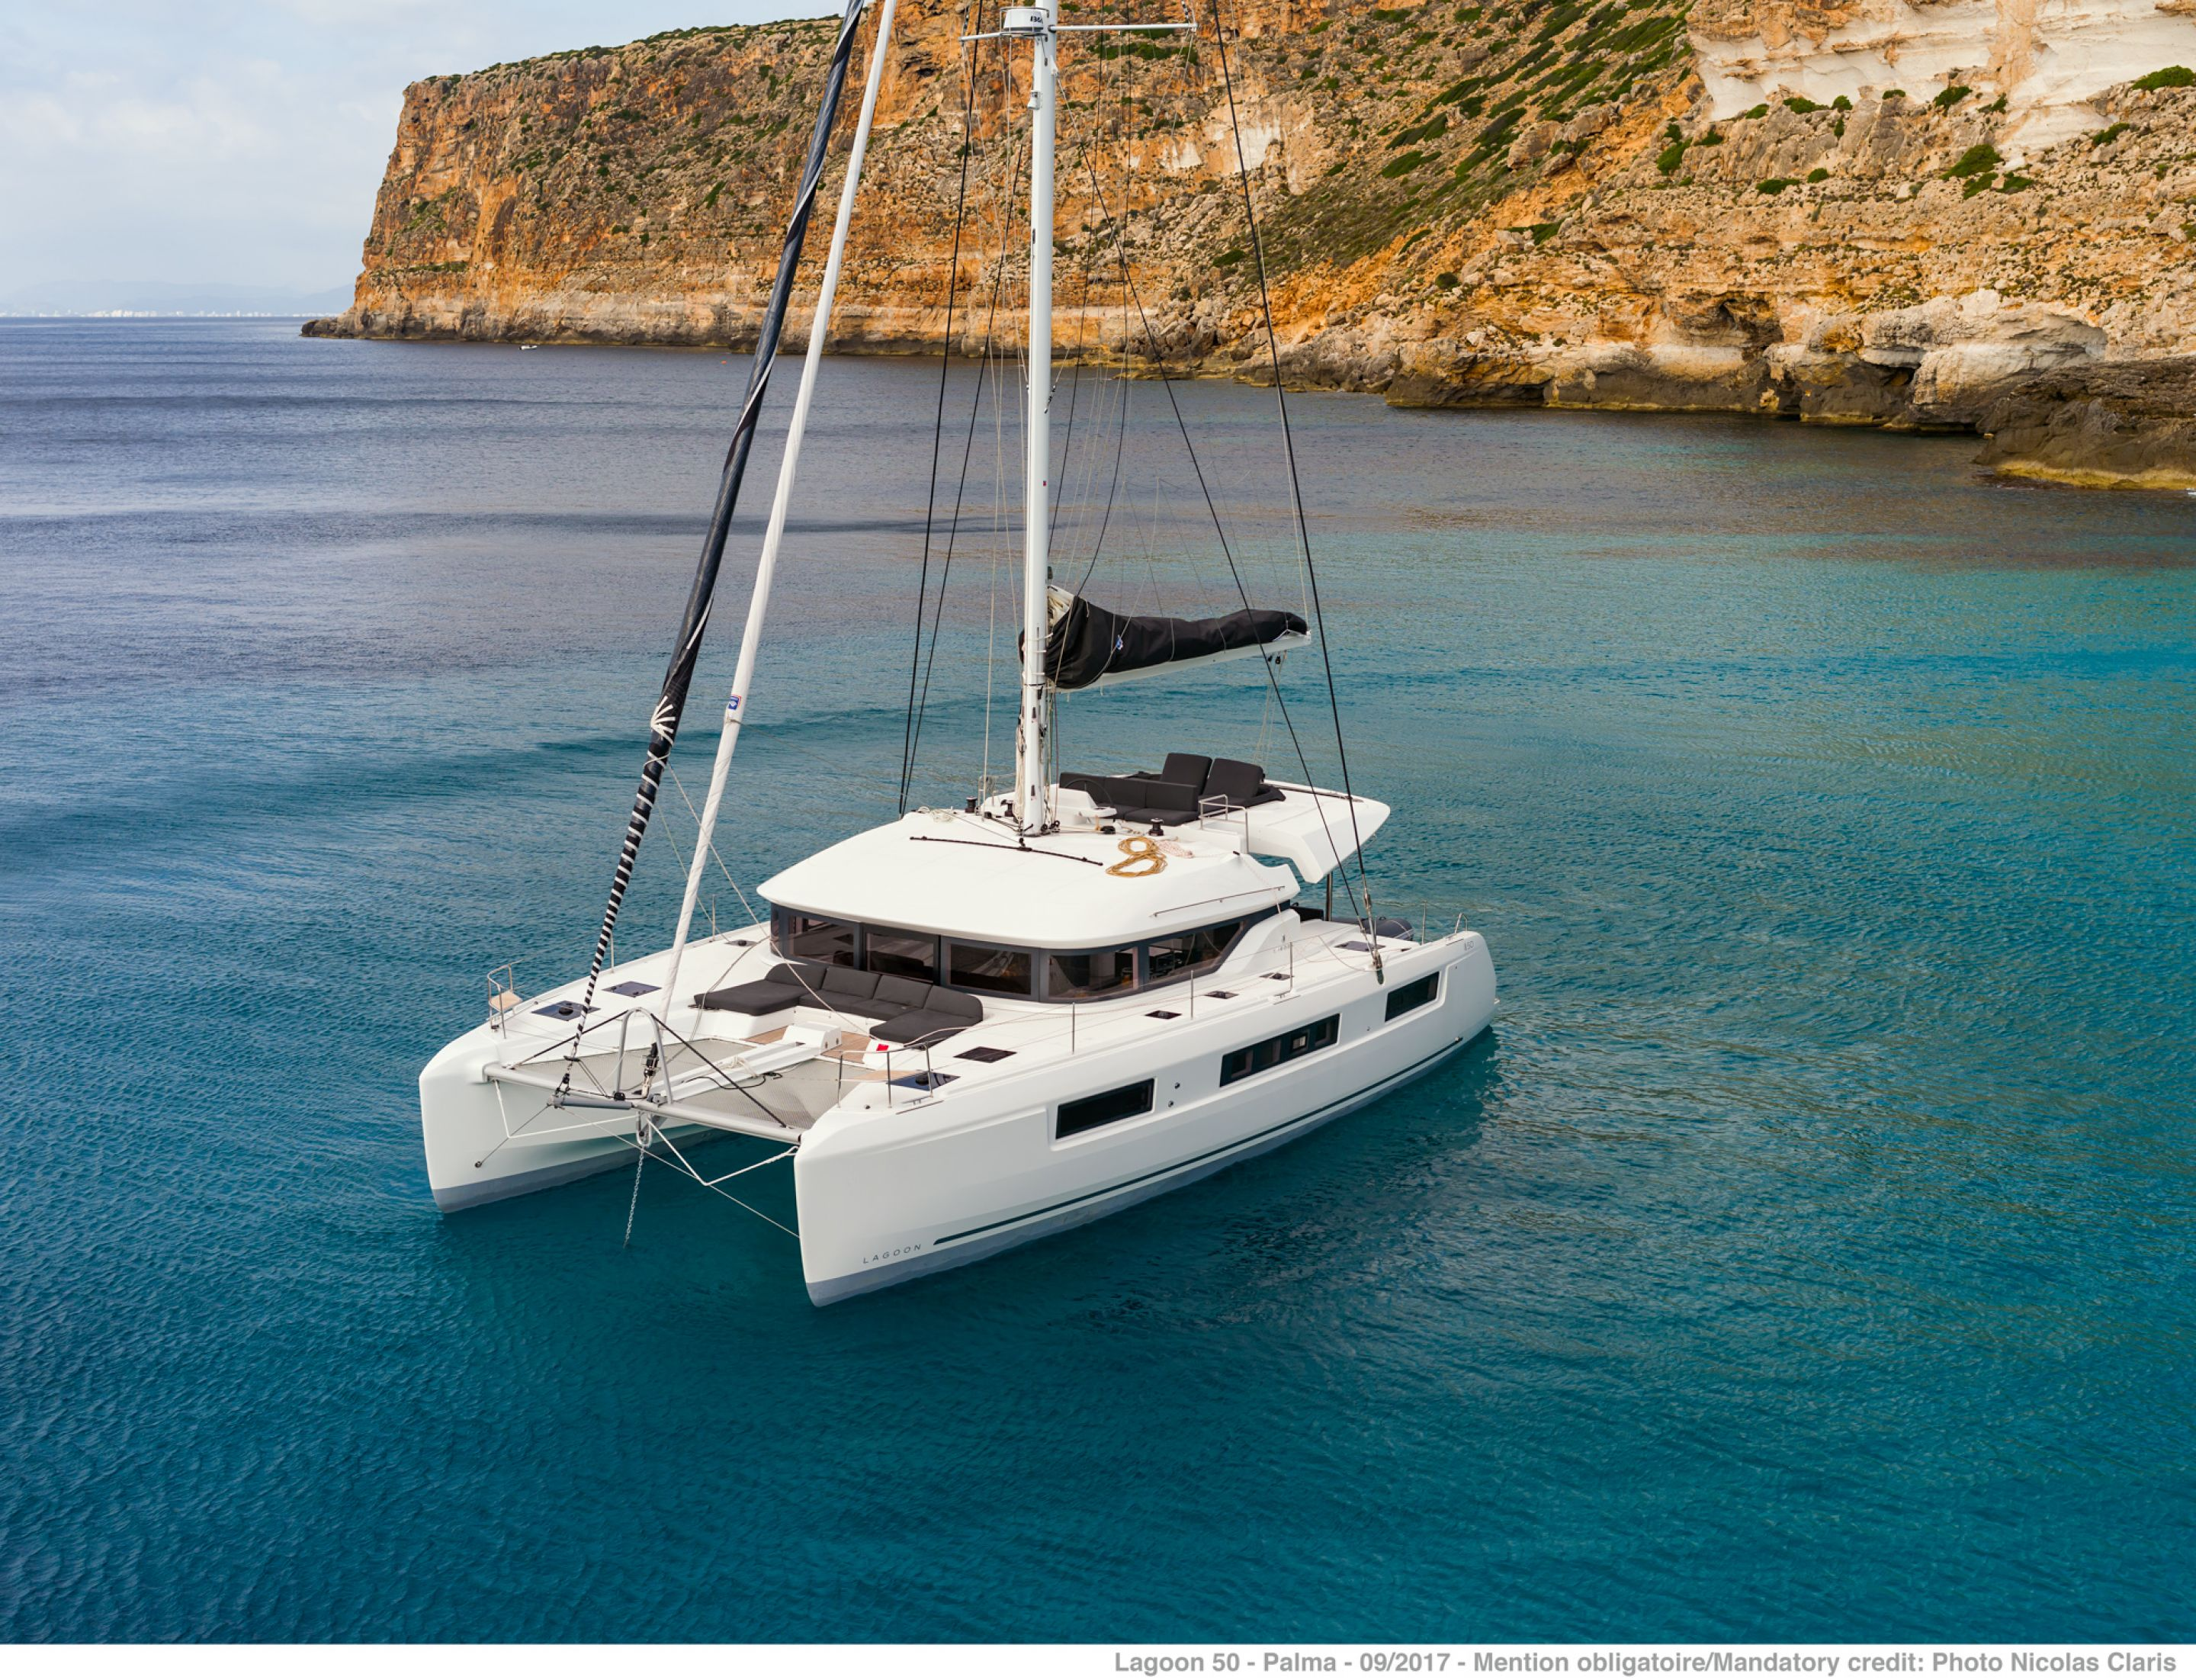 Lagoon 50 (7Cab) - Catamaran for Charter in Greece